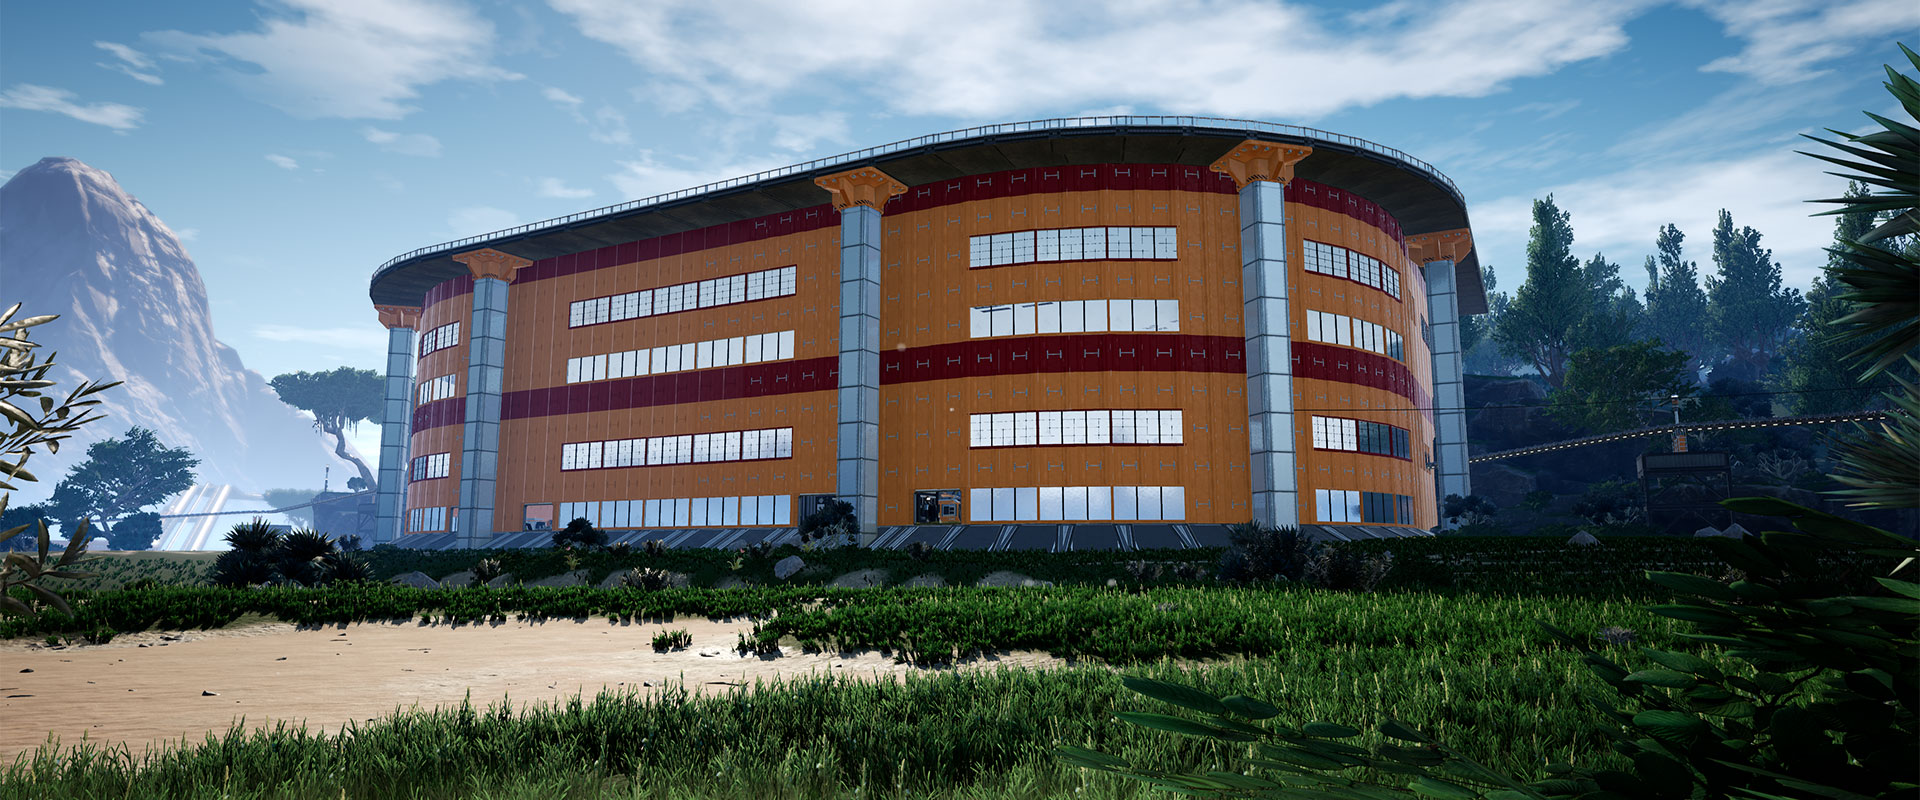 2 floors rounded building in GrassLand